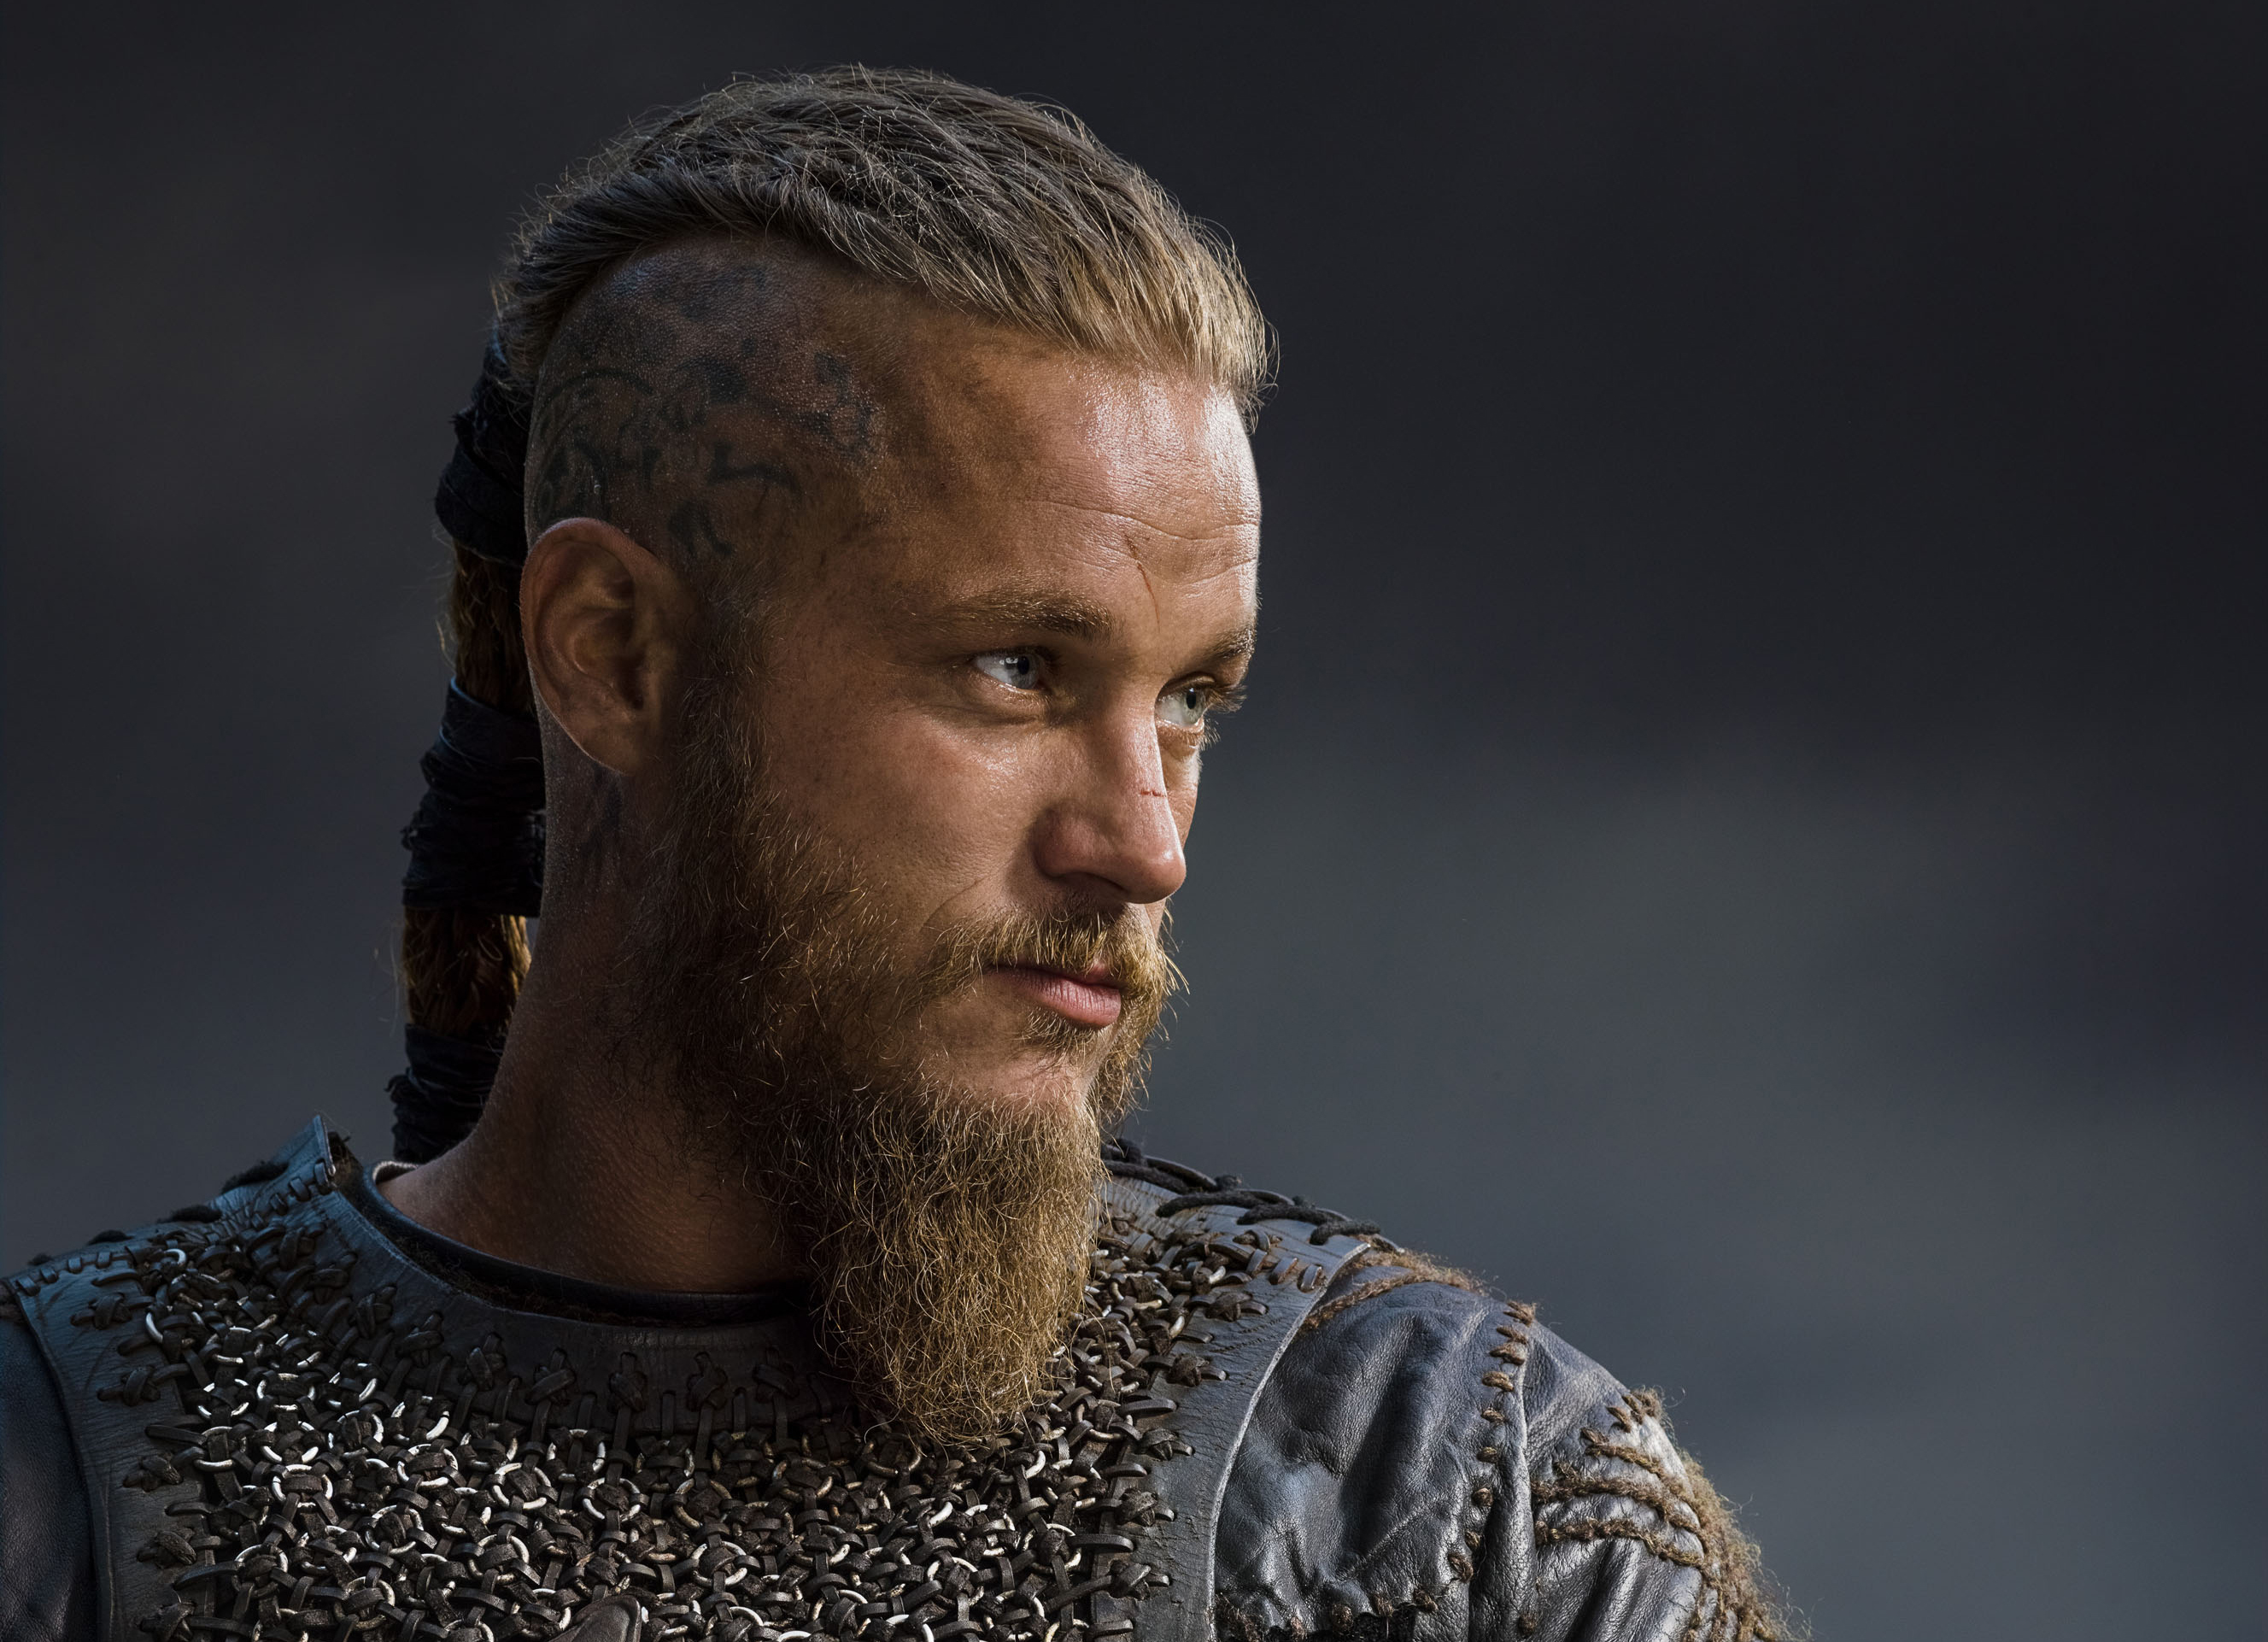 being-travis-fimmel-shaved-sex